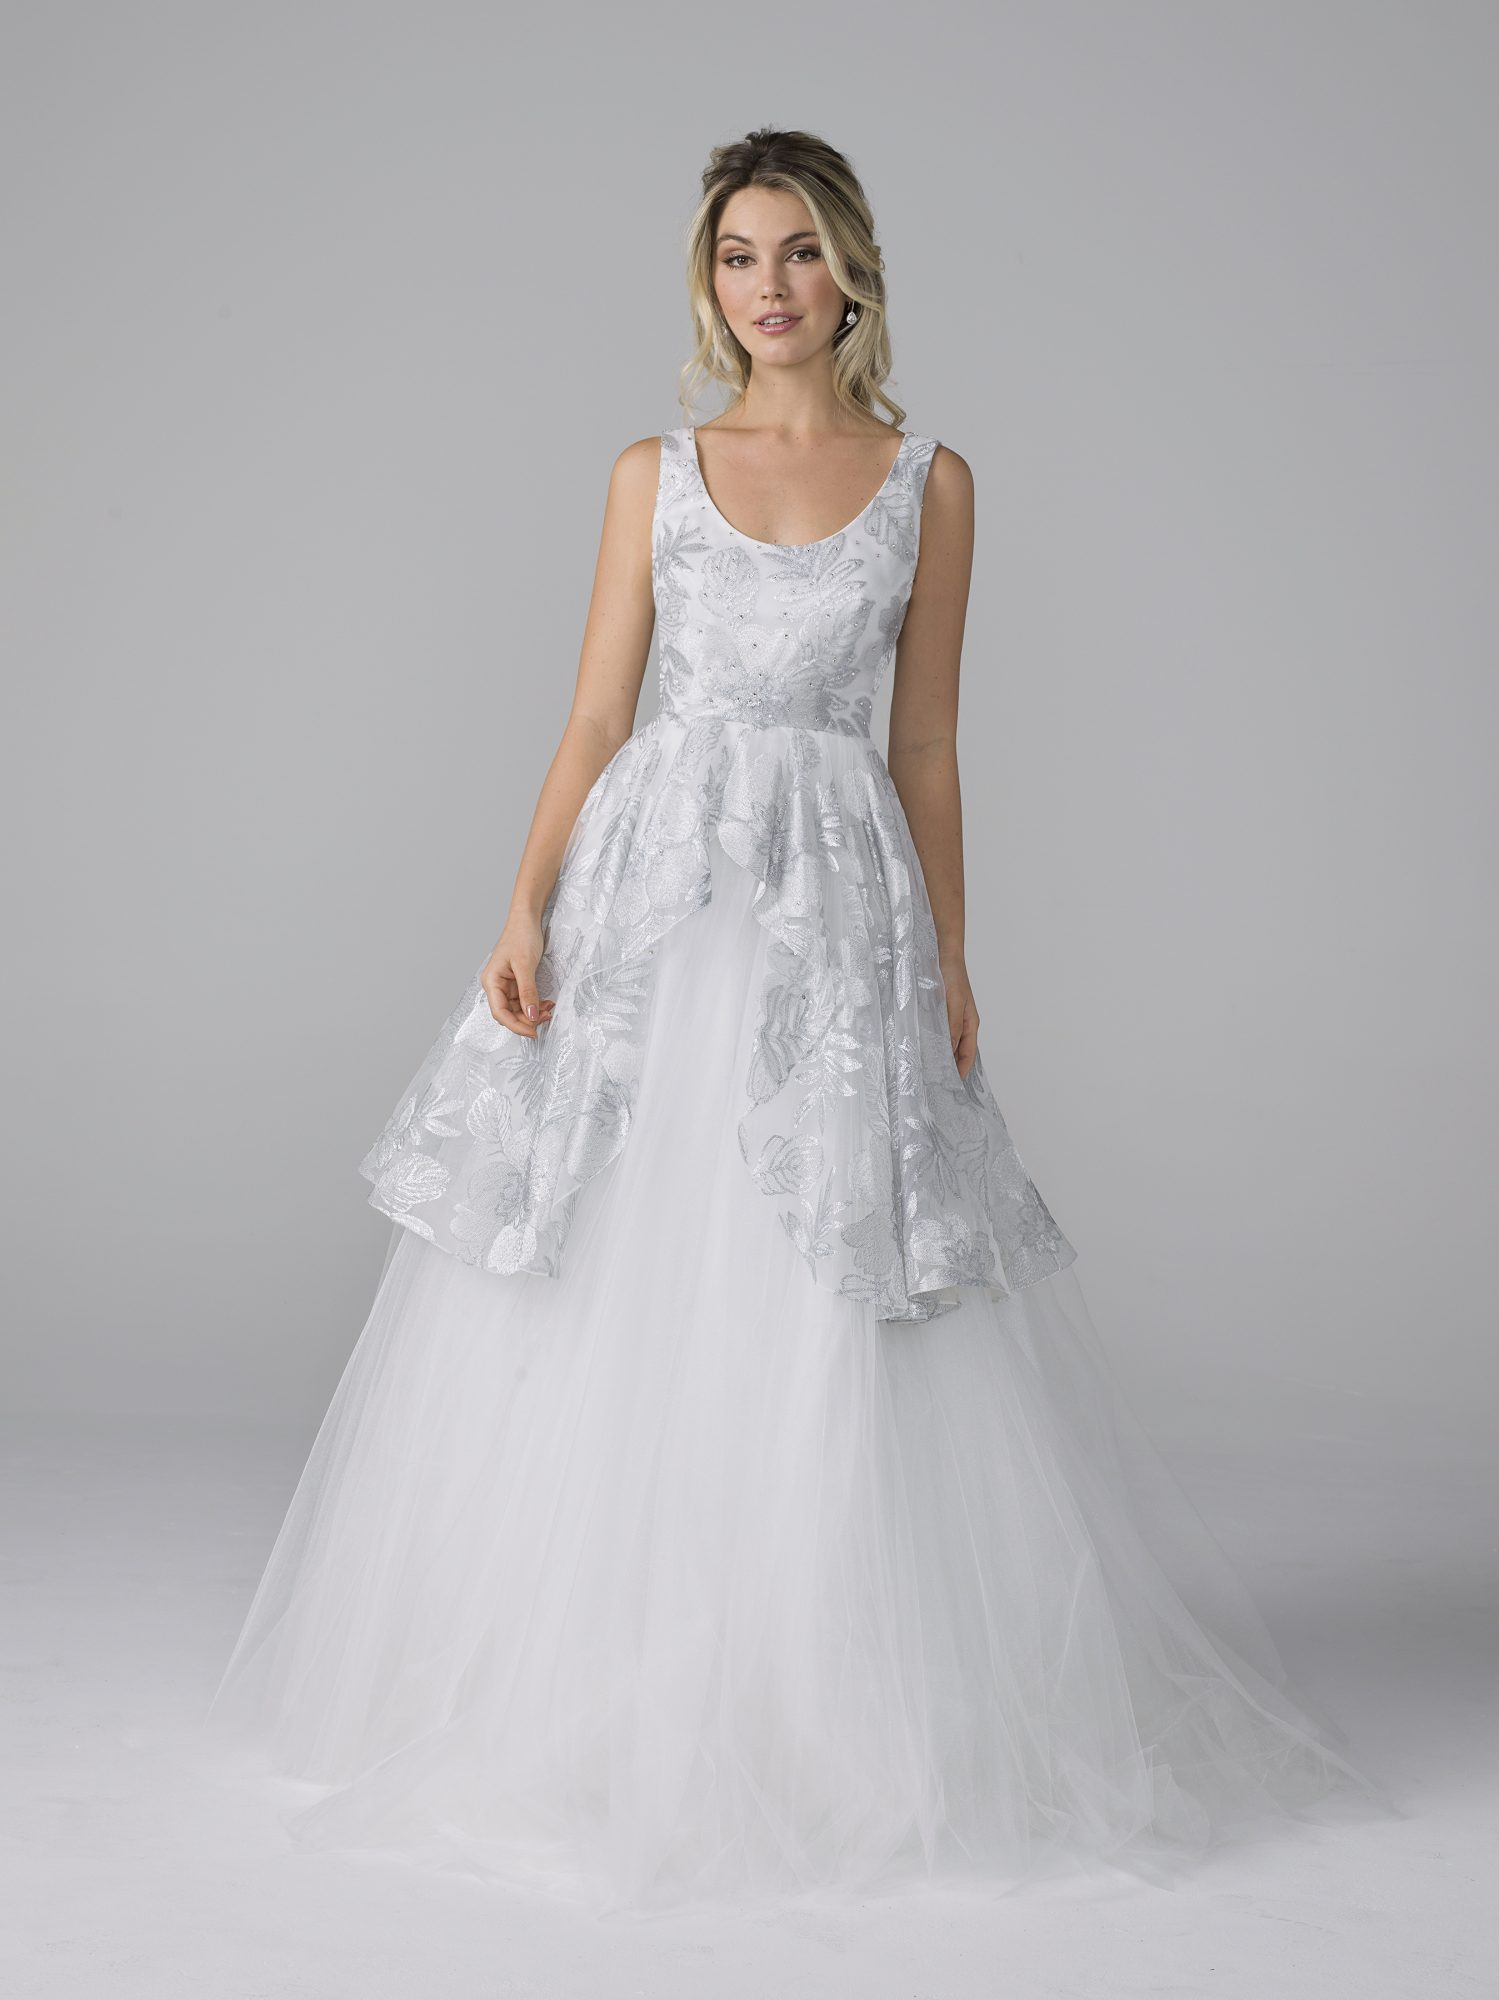 azul by liancarlo fall 2019 ball gown scoop neck sleeveless shimmering overlay tulle